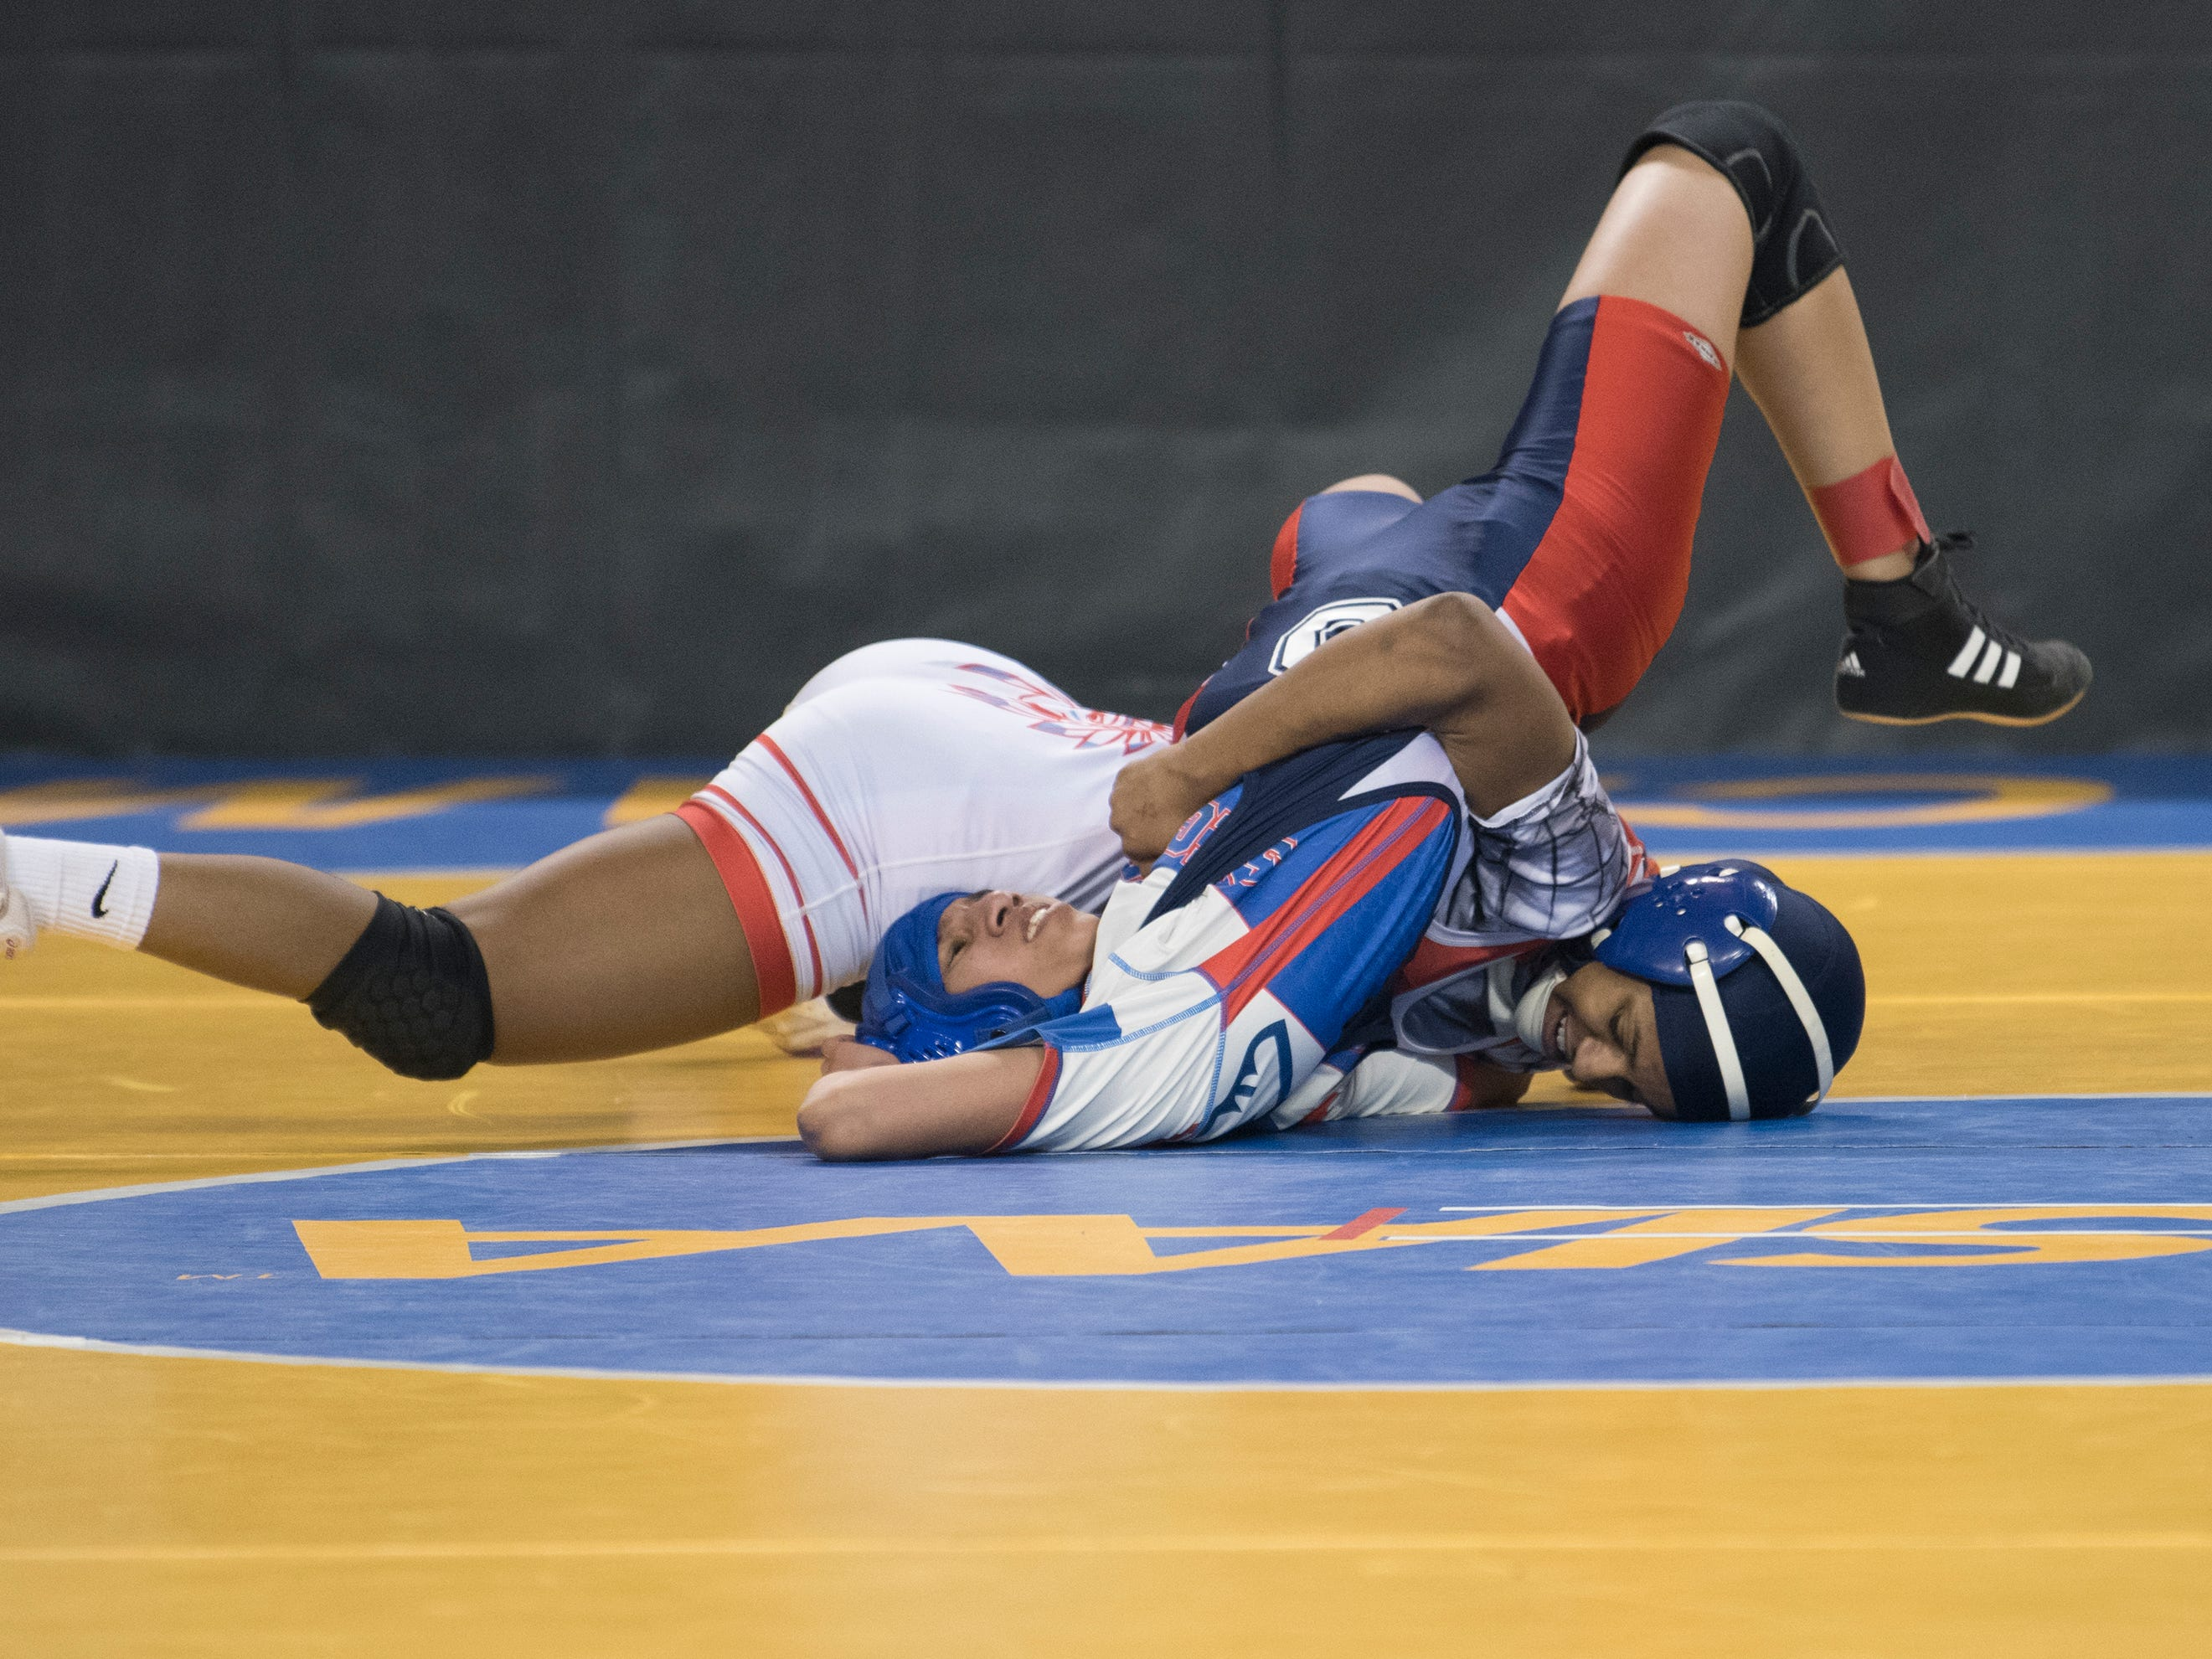 Pennsauken's Annmarie Lebron pins Breanna Cervantes of Seacaucus to win an 100 lb., opening round bout of the 2019 NJSIAA Girls State Wrestling Championships tournament held at Boardwalk Hall in Atlantic City on Friday, March 1, 2019.